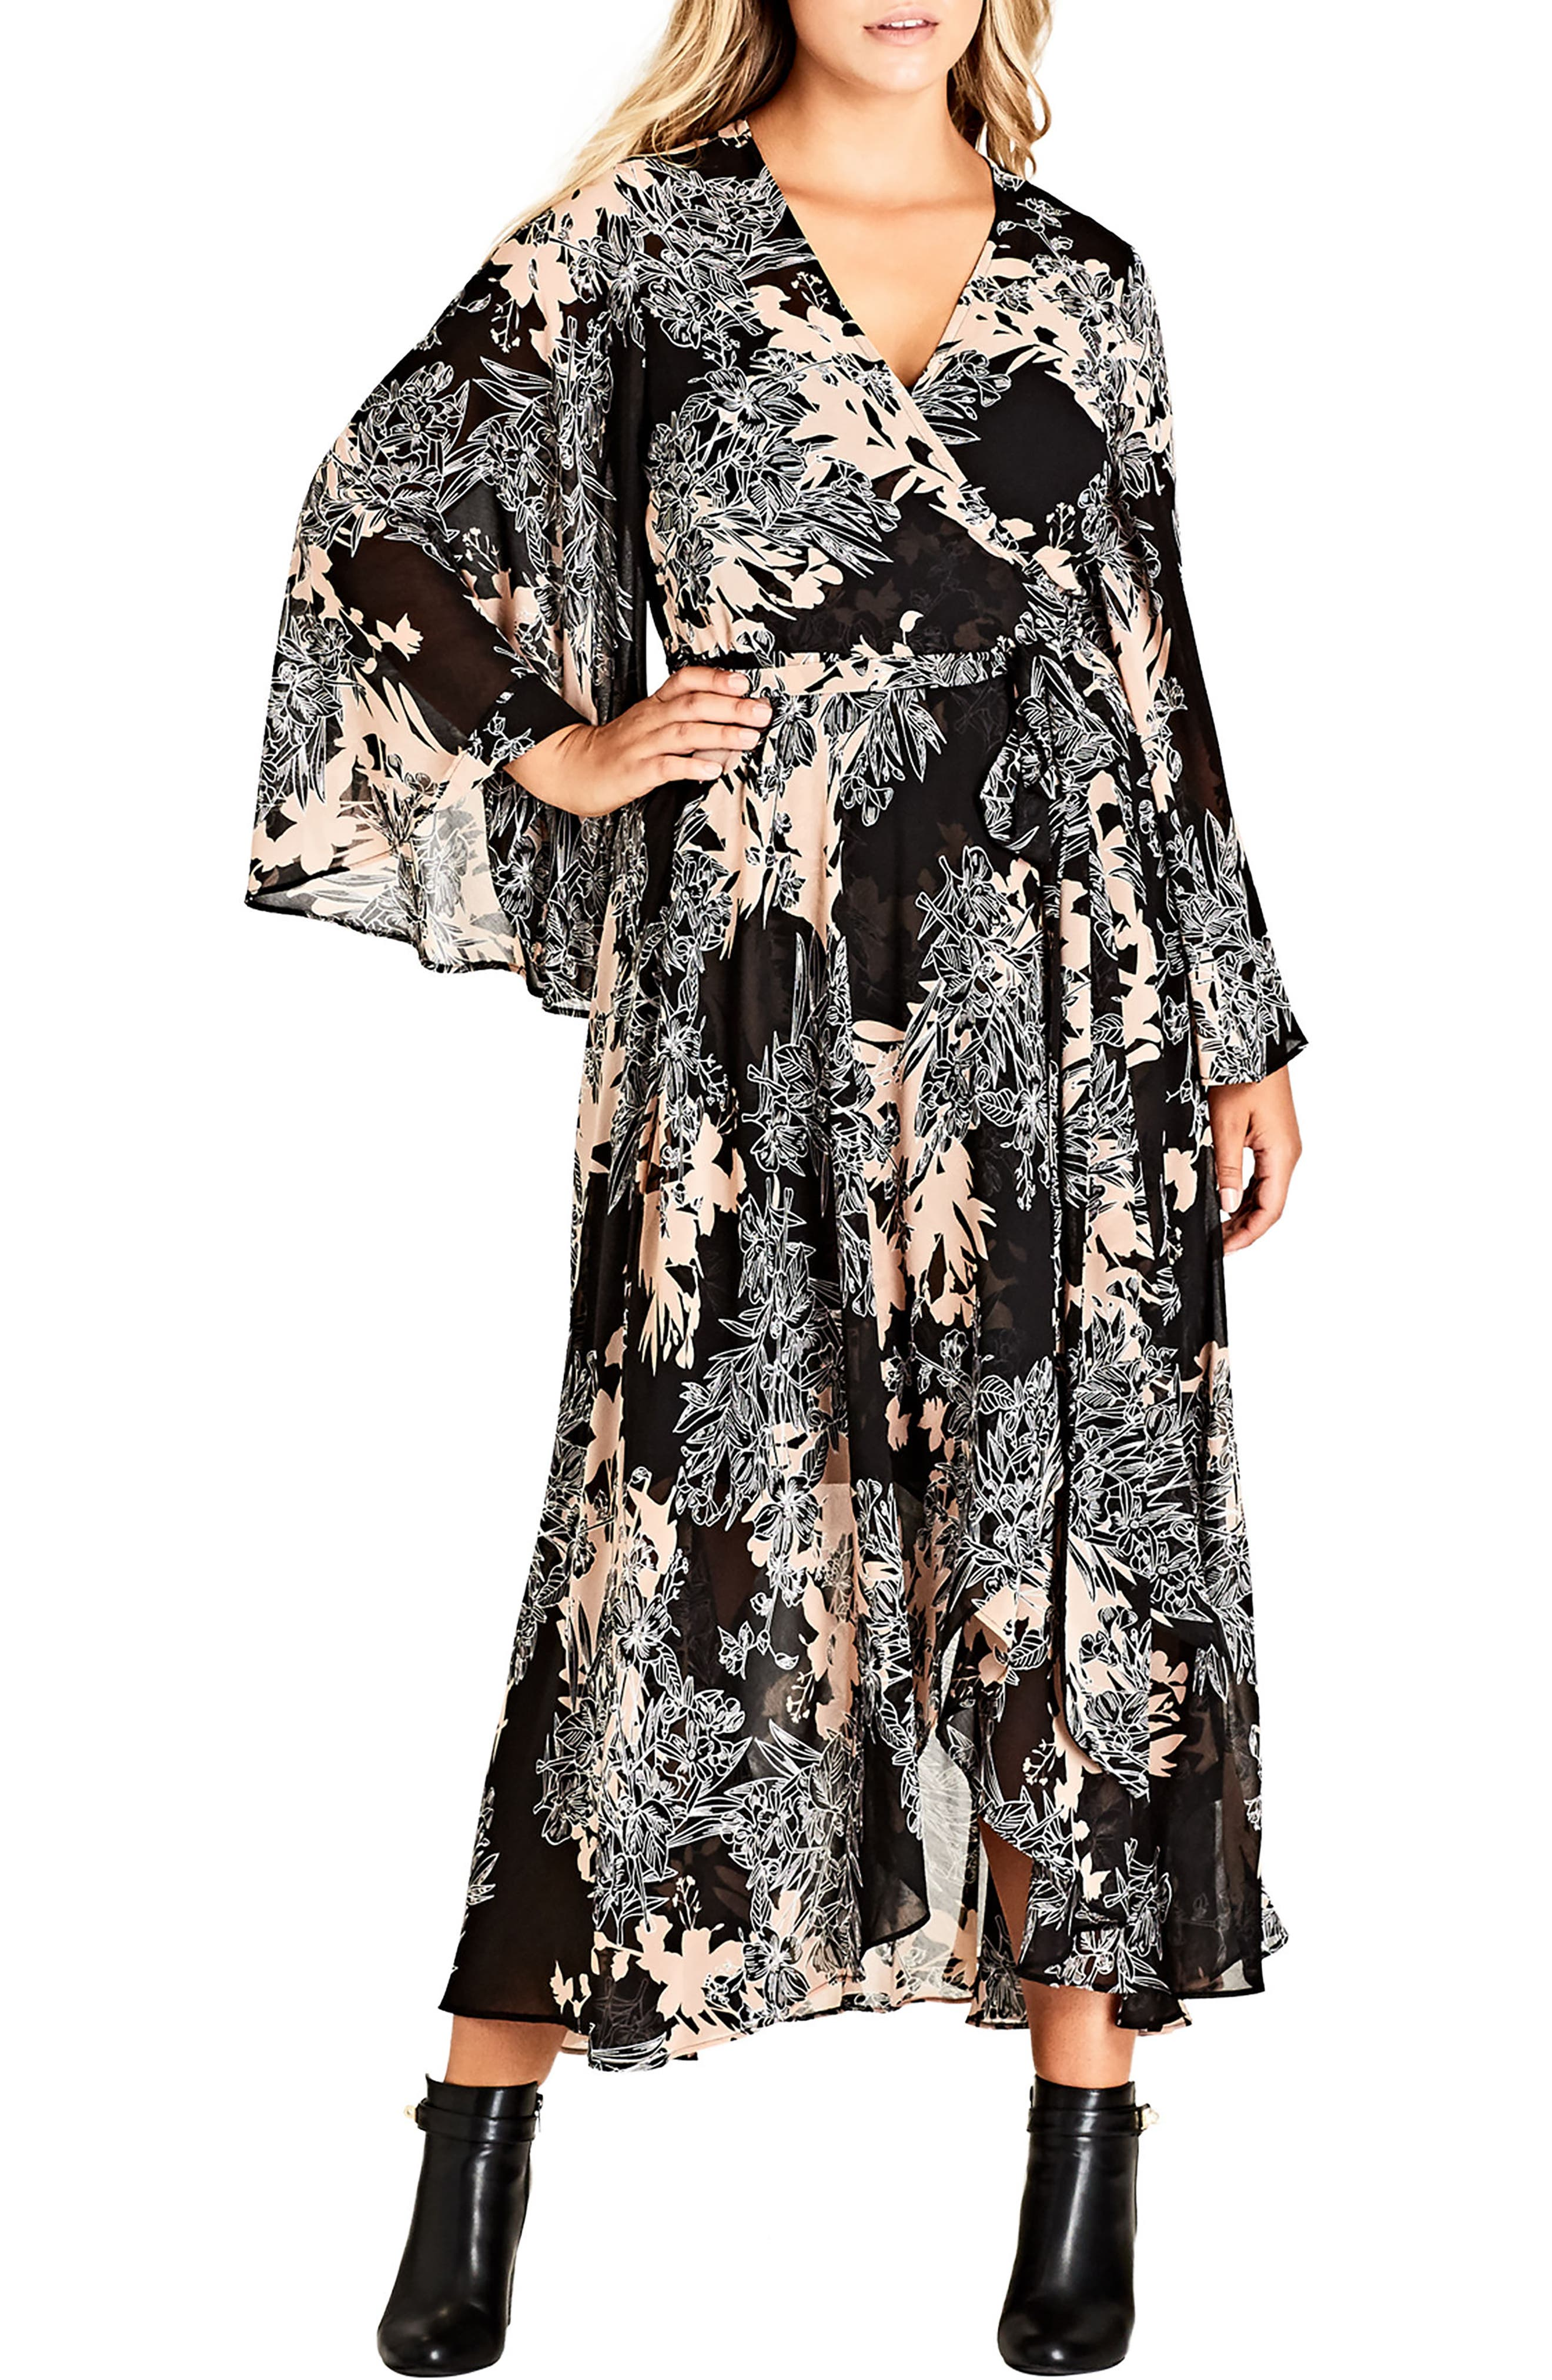 Alternate Image 1 Selected - City Chic Shadow Floral Maxi Dress (Plus Size)